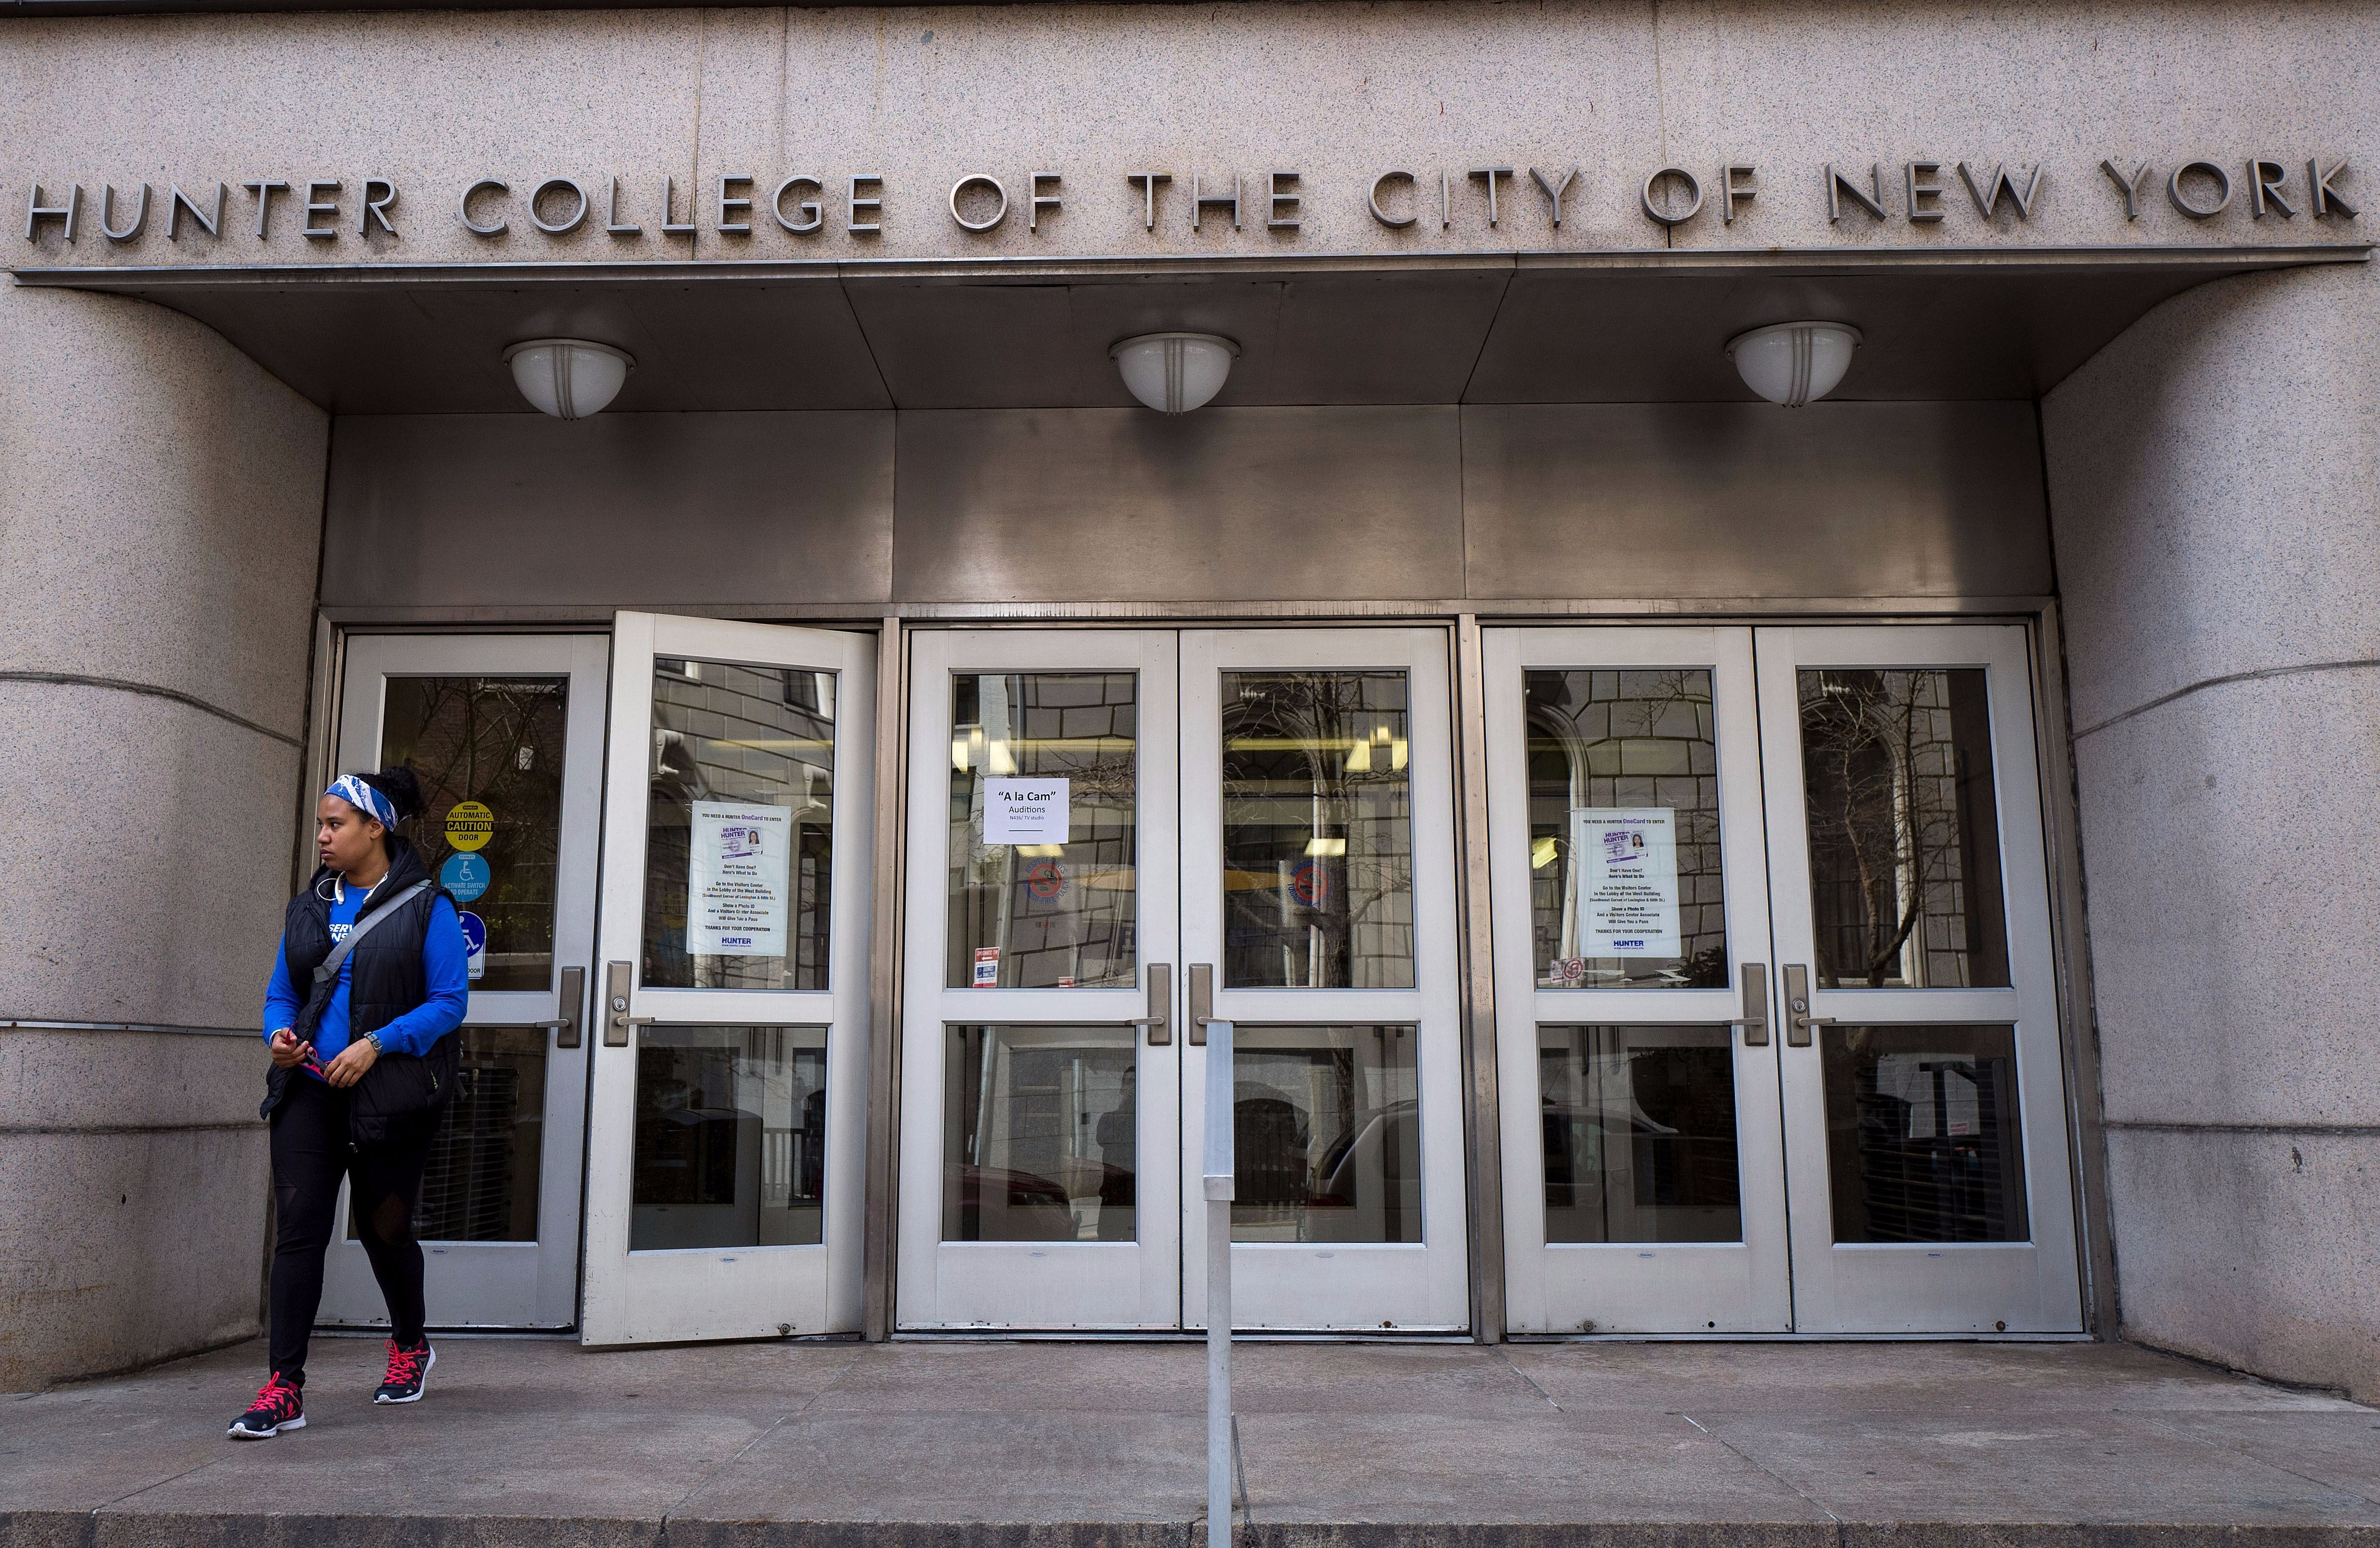 Hunter College of the City of New York